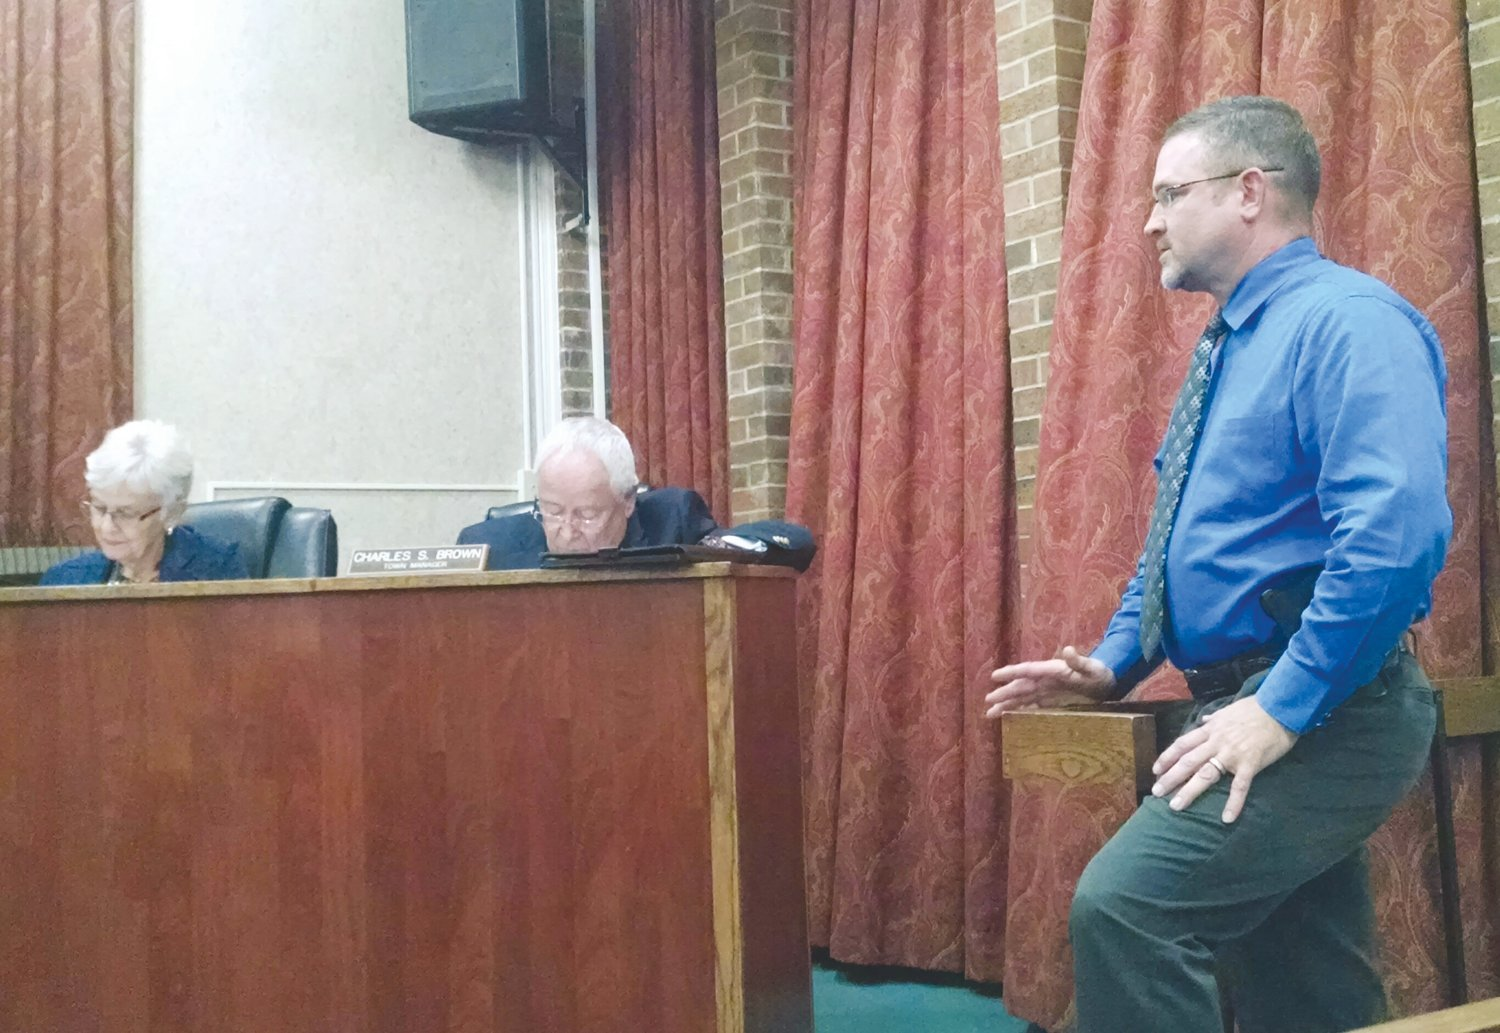 Mount Olive Police Chief Tommy Brown addressed members of the town board last week on details of switching the 40-caliber handguns his officers currently carry with 9-mm firearms.